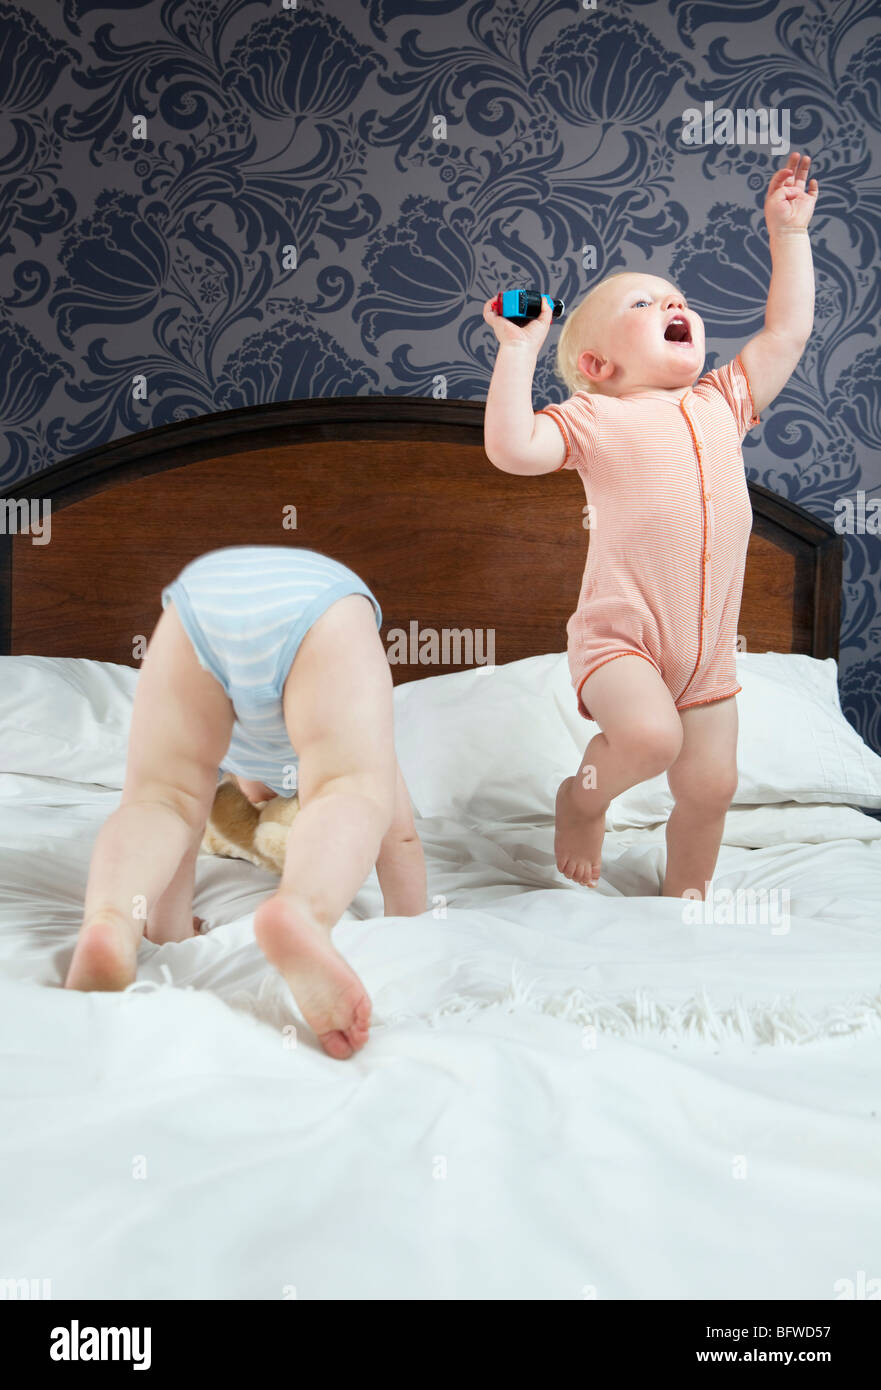 Two baby boys play on a bed Stock Photo